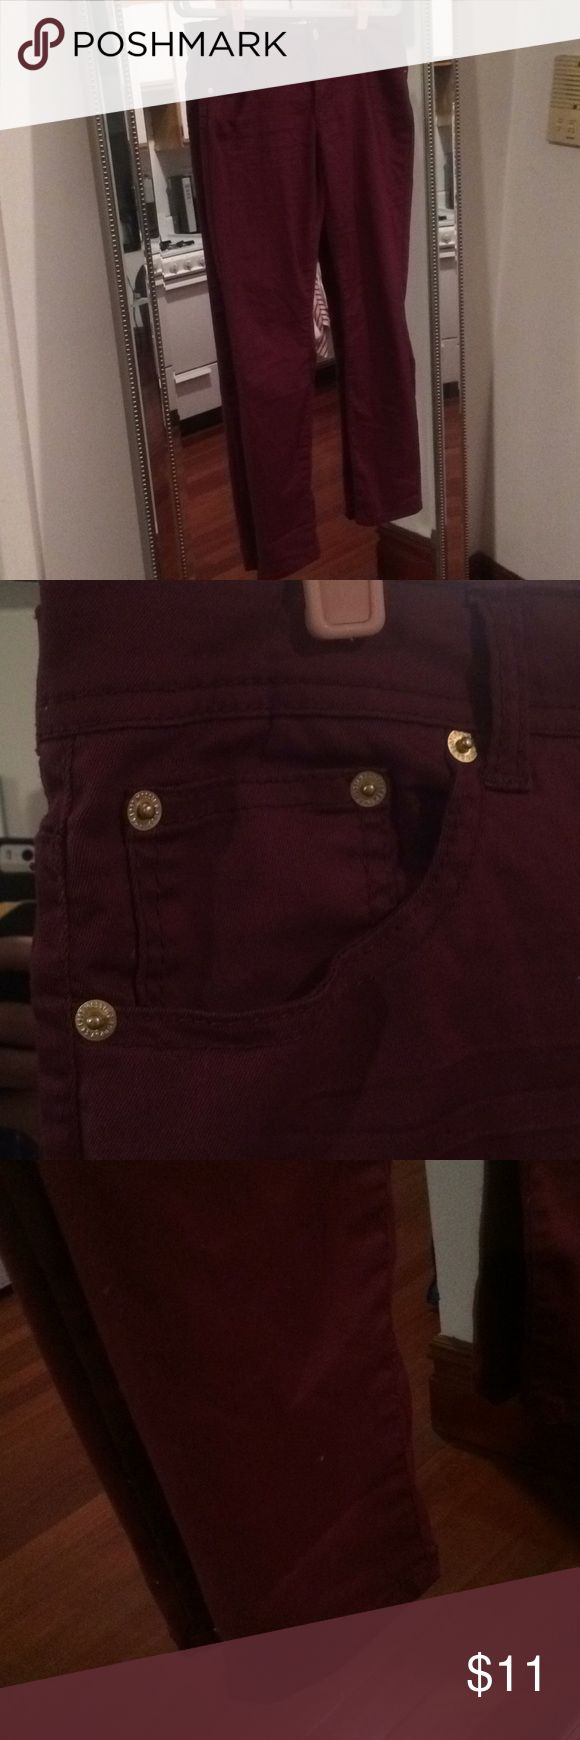 Maroon Skinny Jeans NWOT New without tags and never worn Jeans Skinny